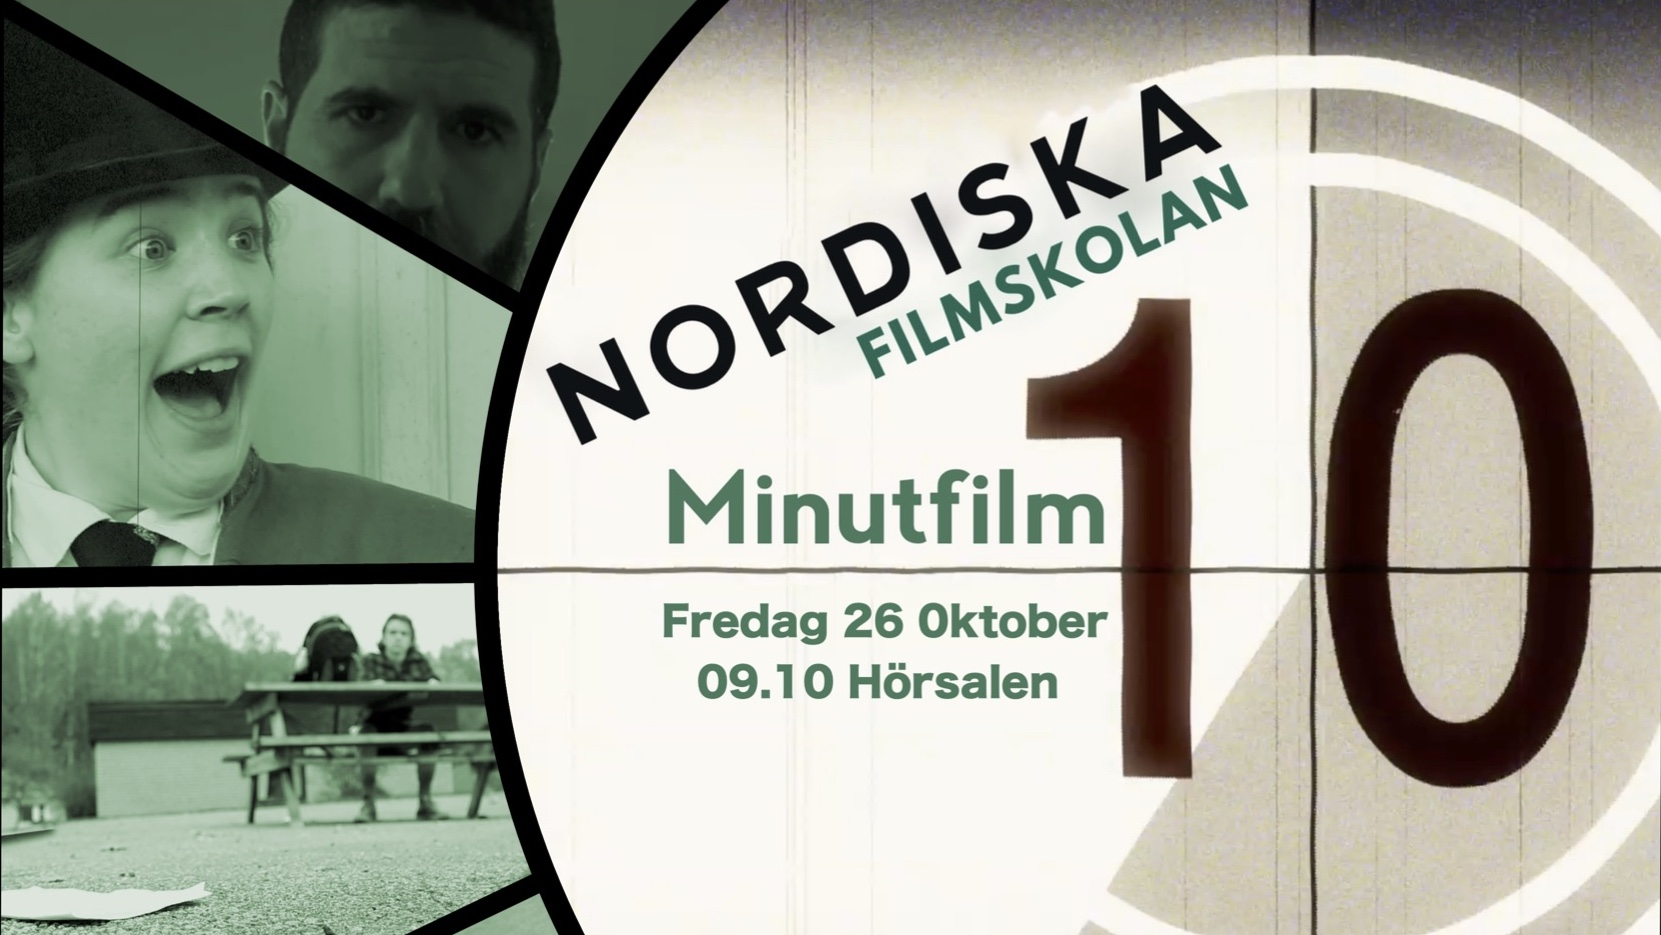 //nordiska.fhsk.se/media/wp-content/uploads/sites/4/2018/10/minutfilm-2018.jpg